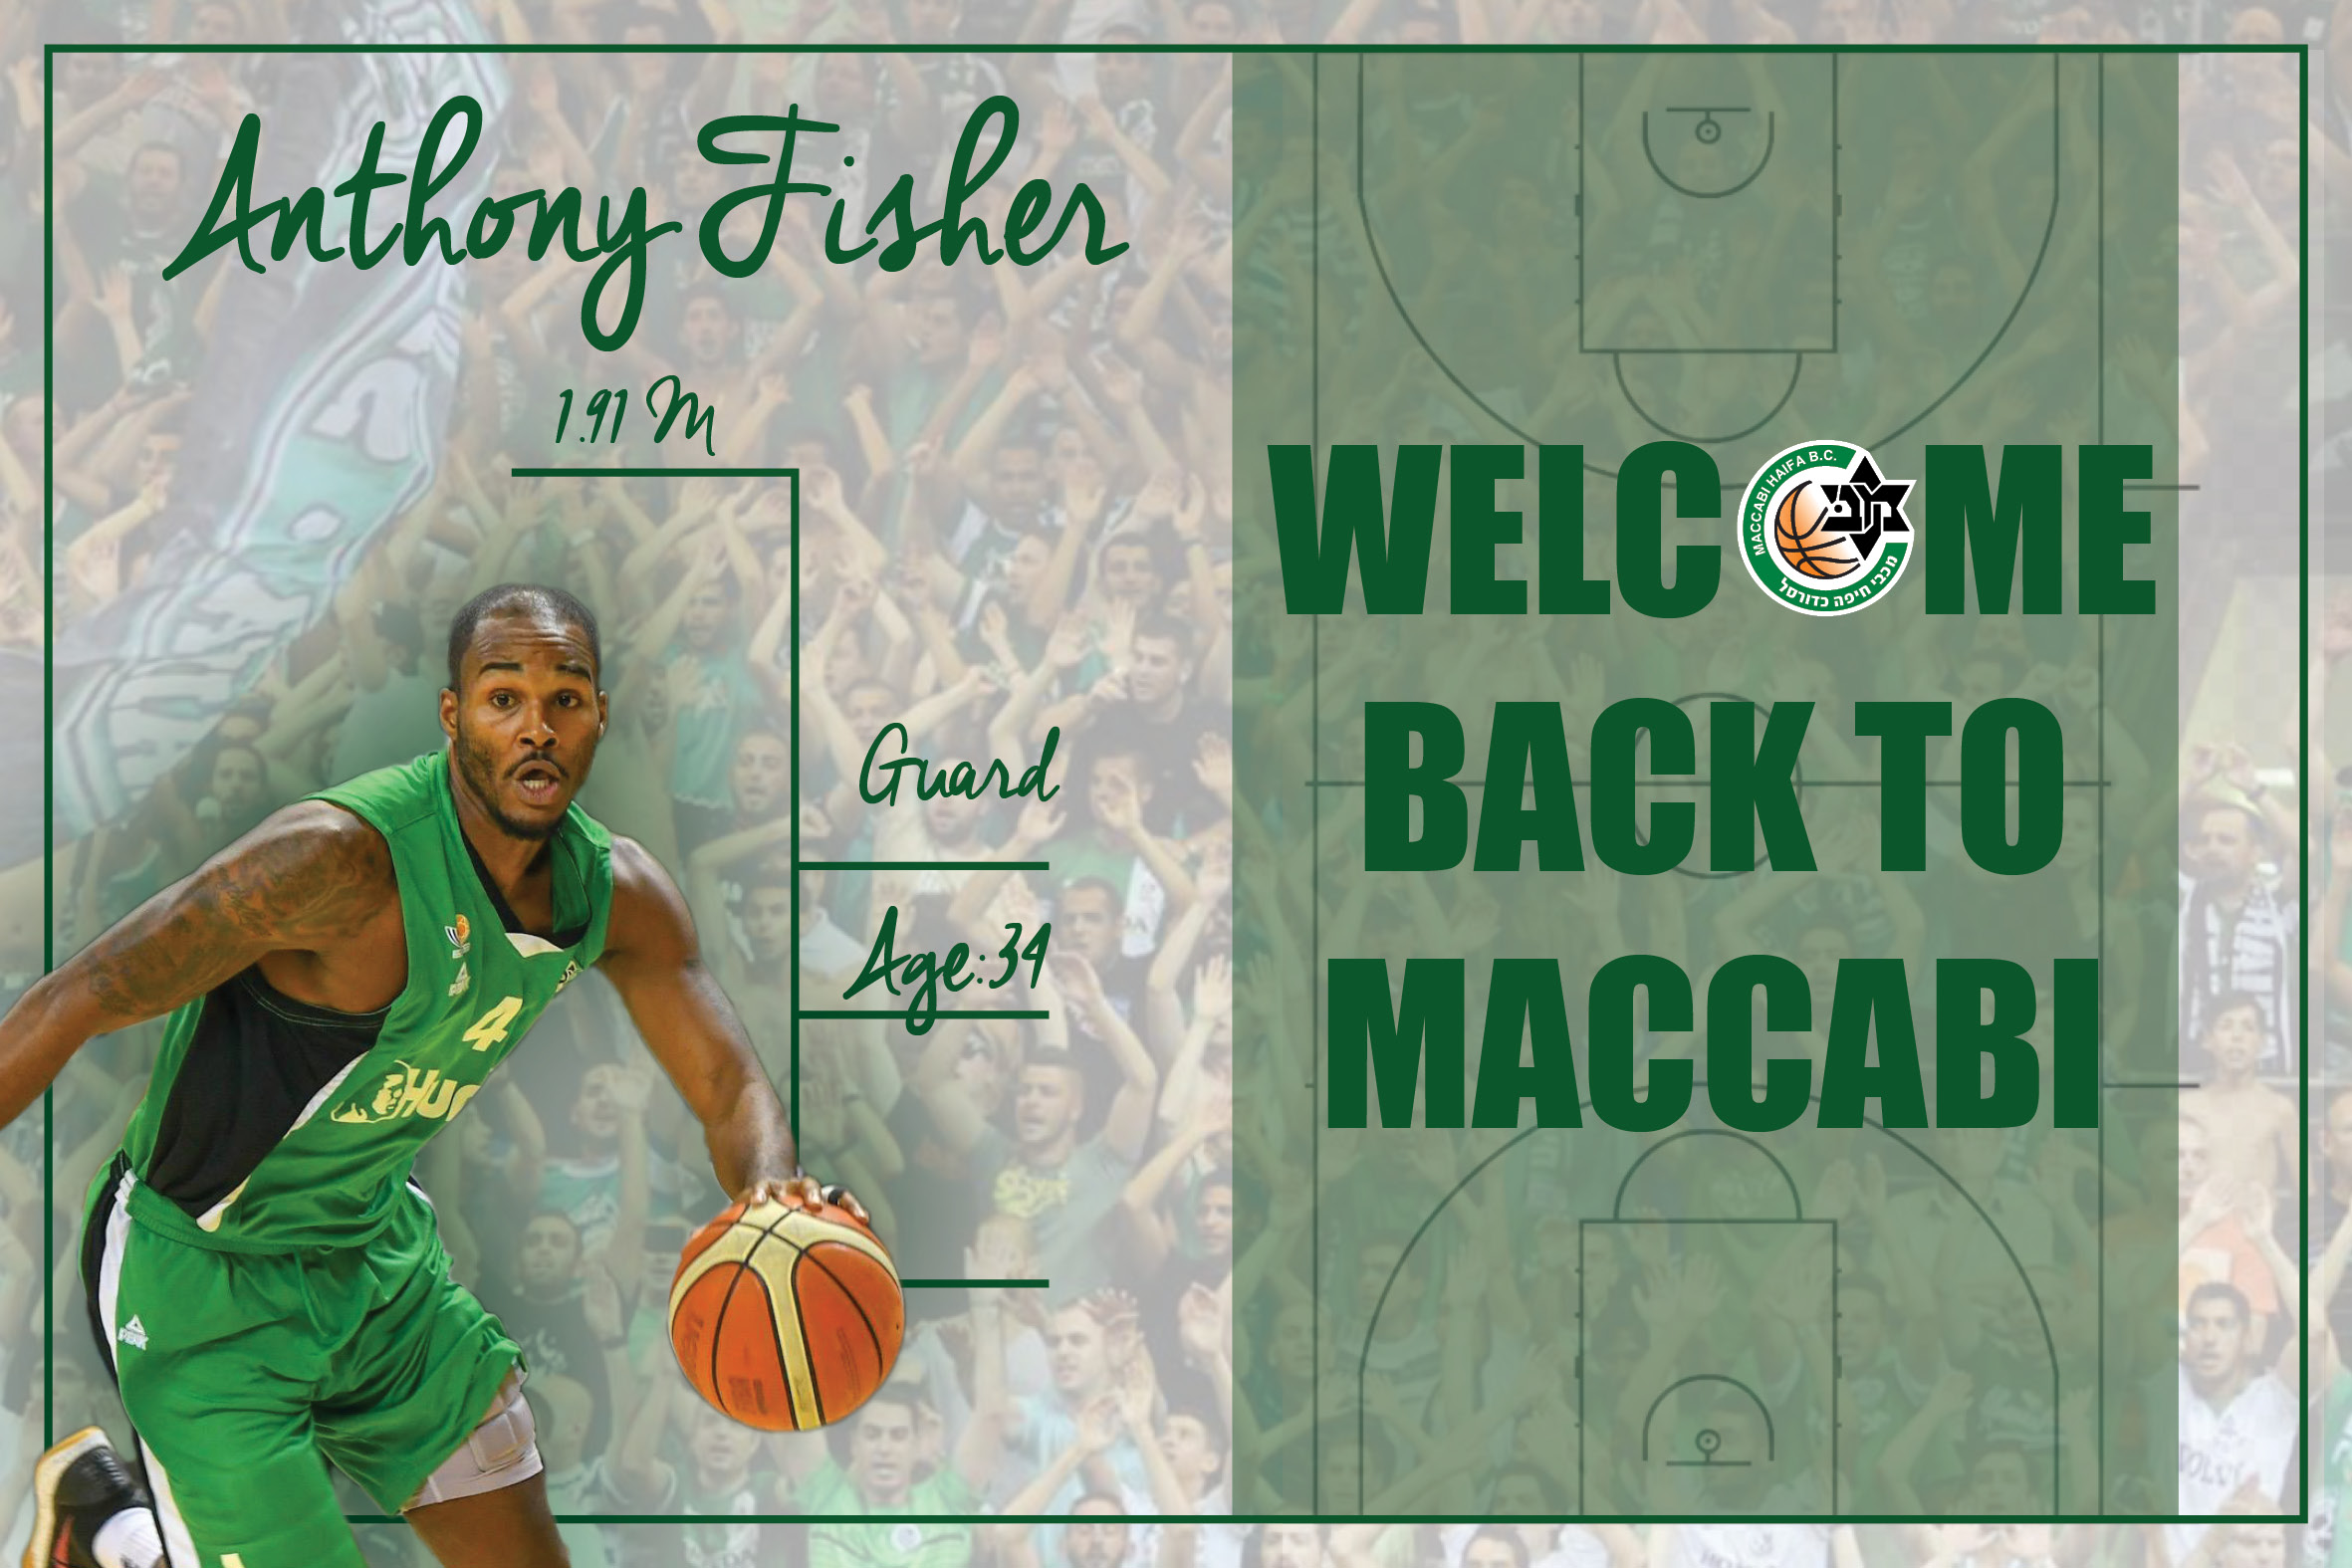 Anthony Fisher signed with Maccabi!